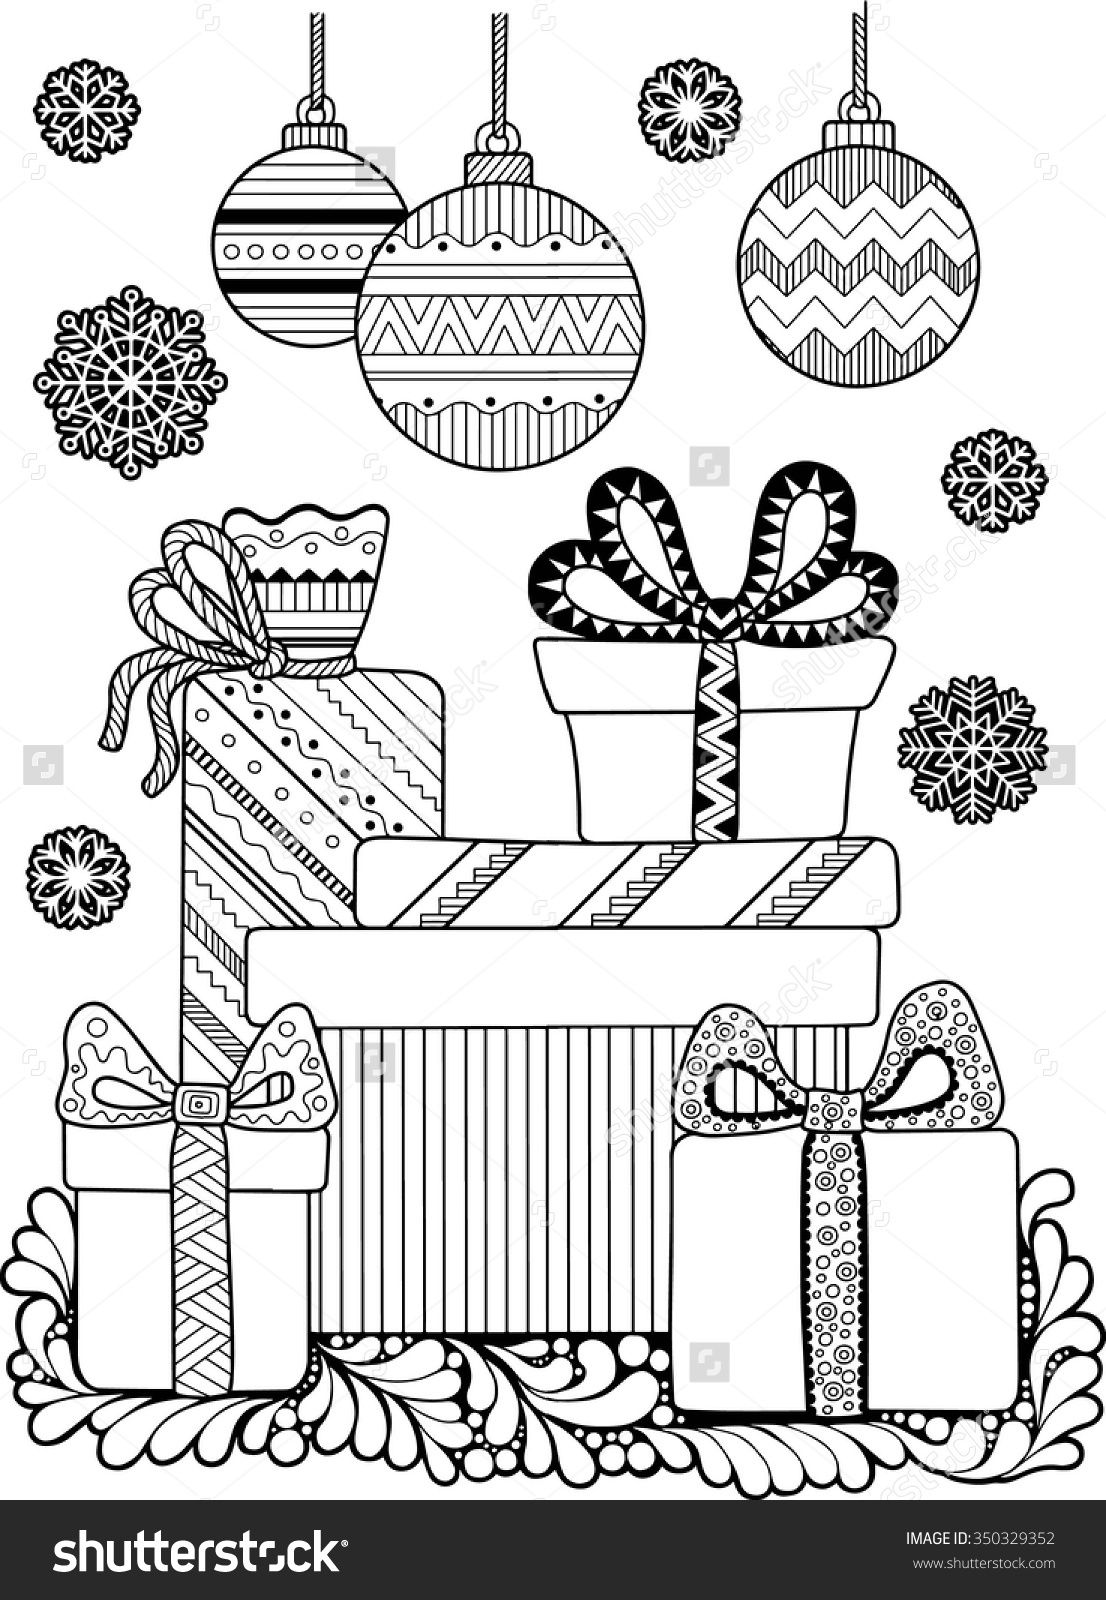 Christmas Coloring Pages Pinterest With Page 350329352 Shutterstock